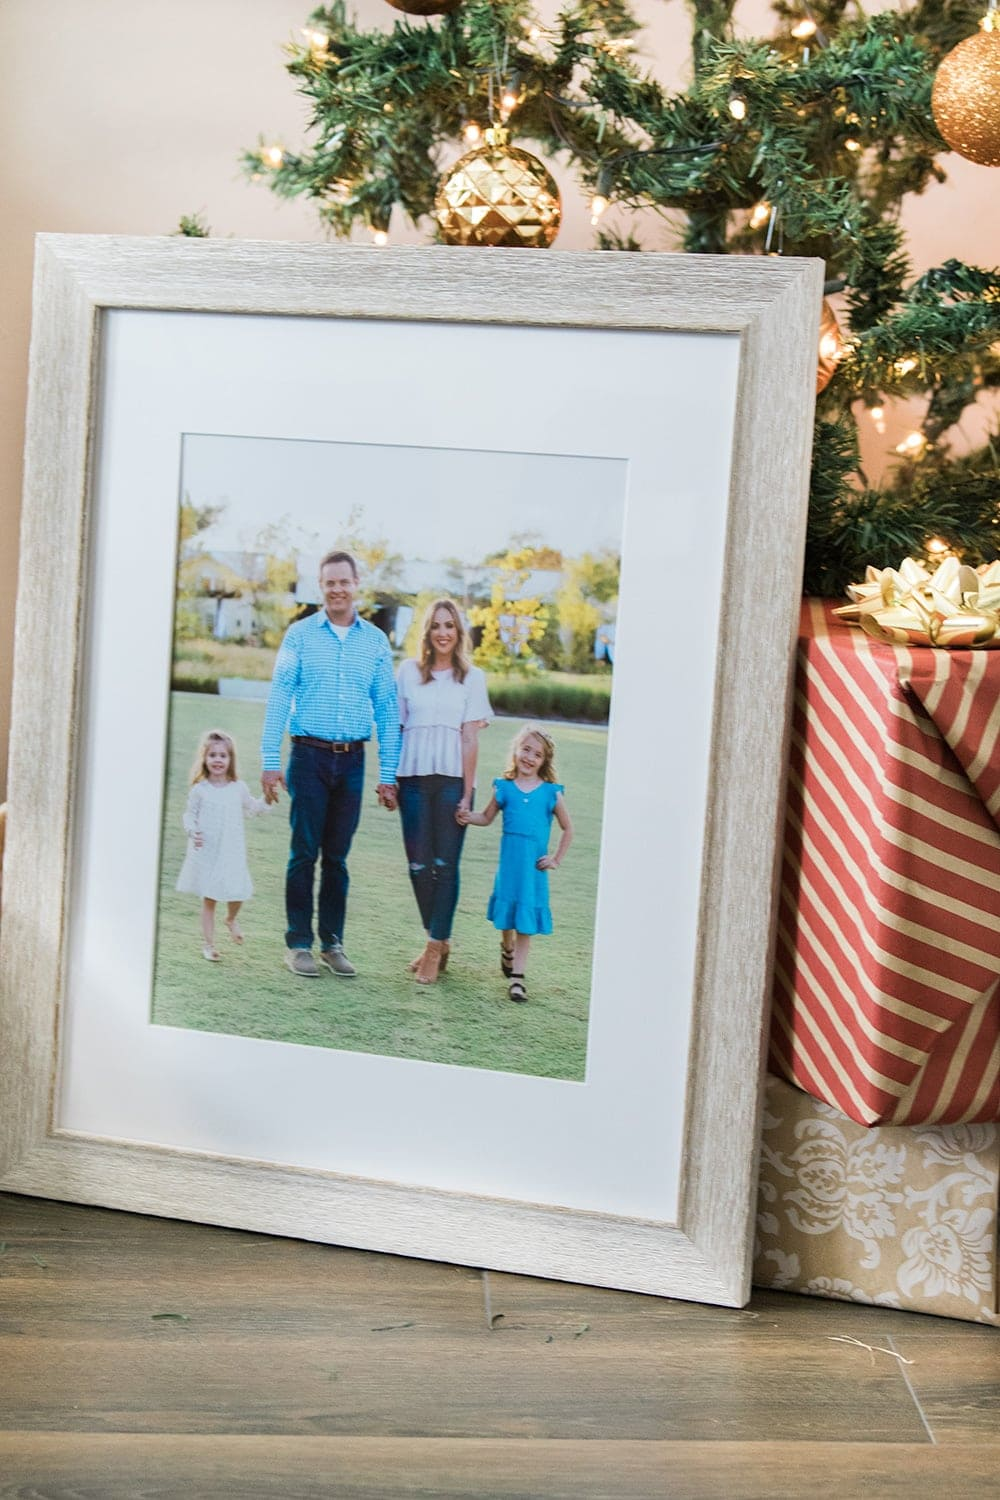 Framed photo art from Shutterfly